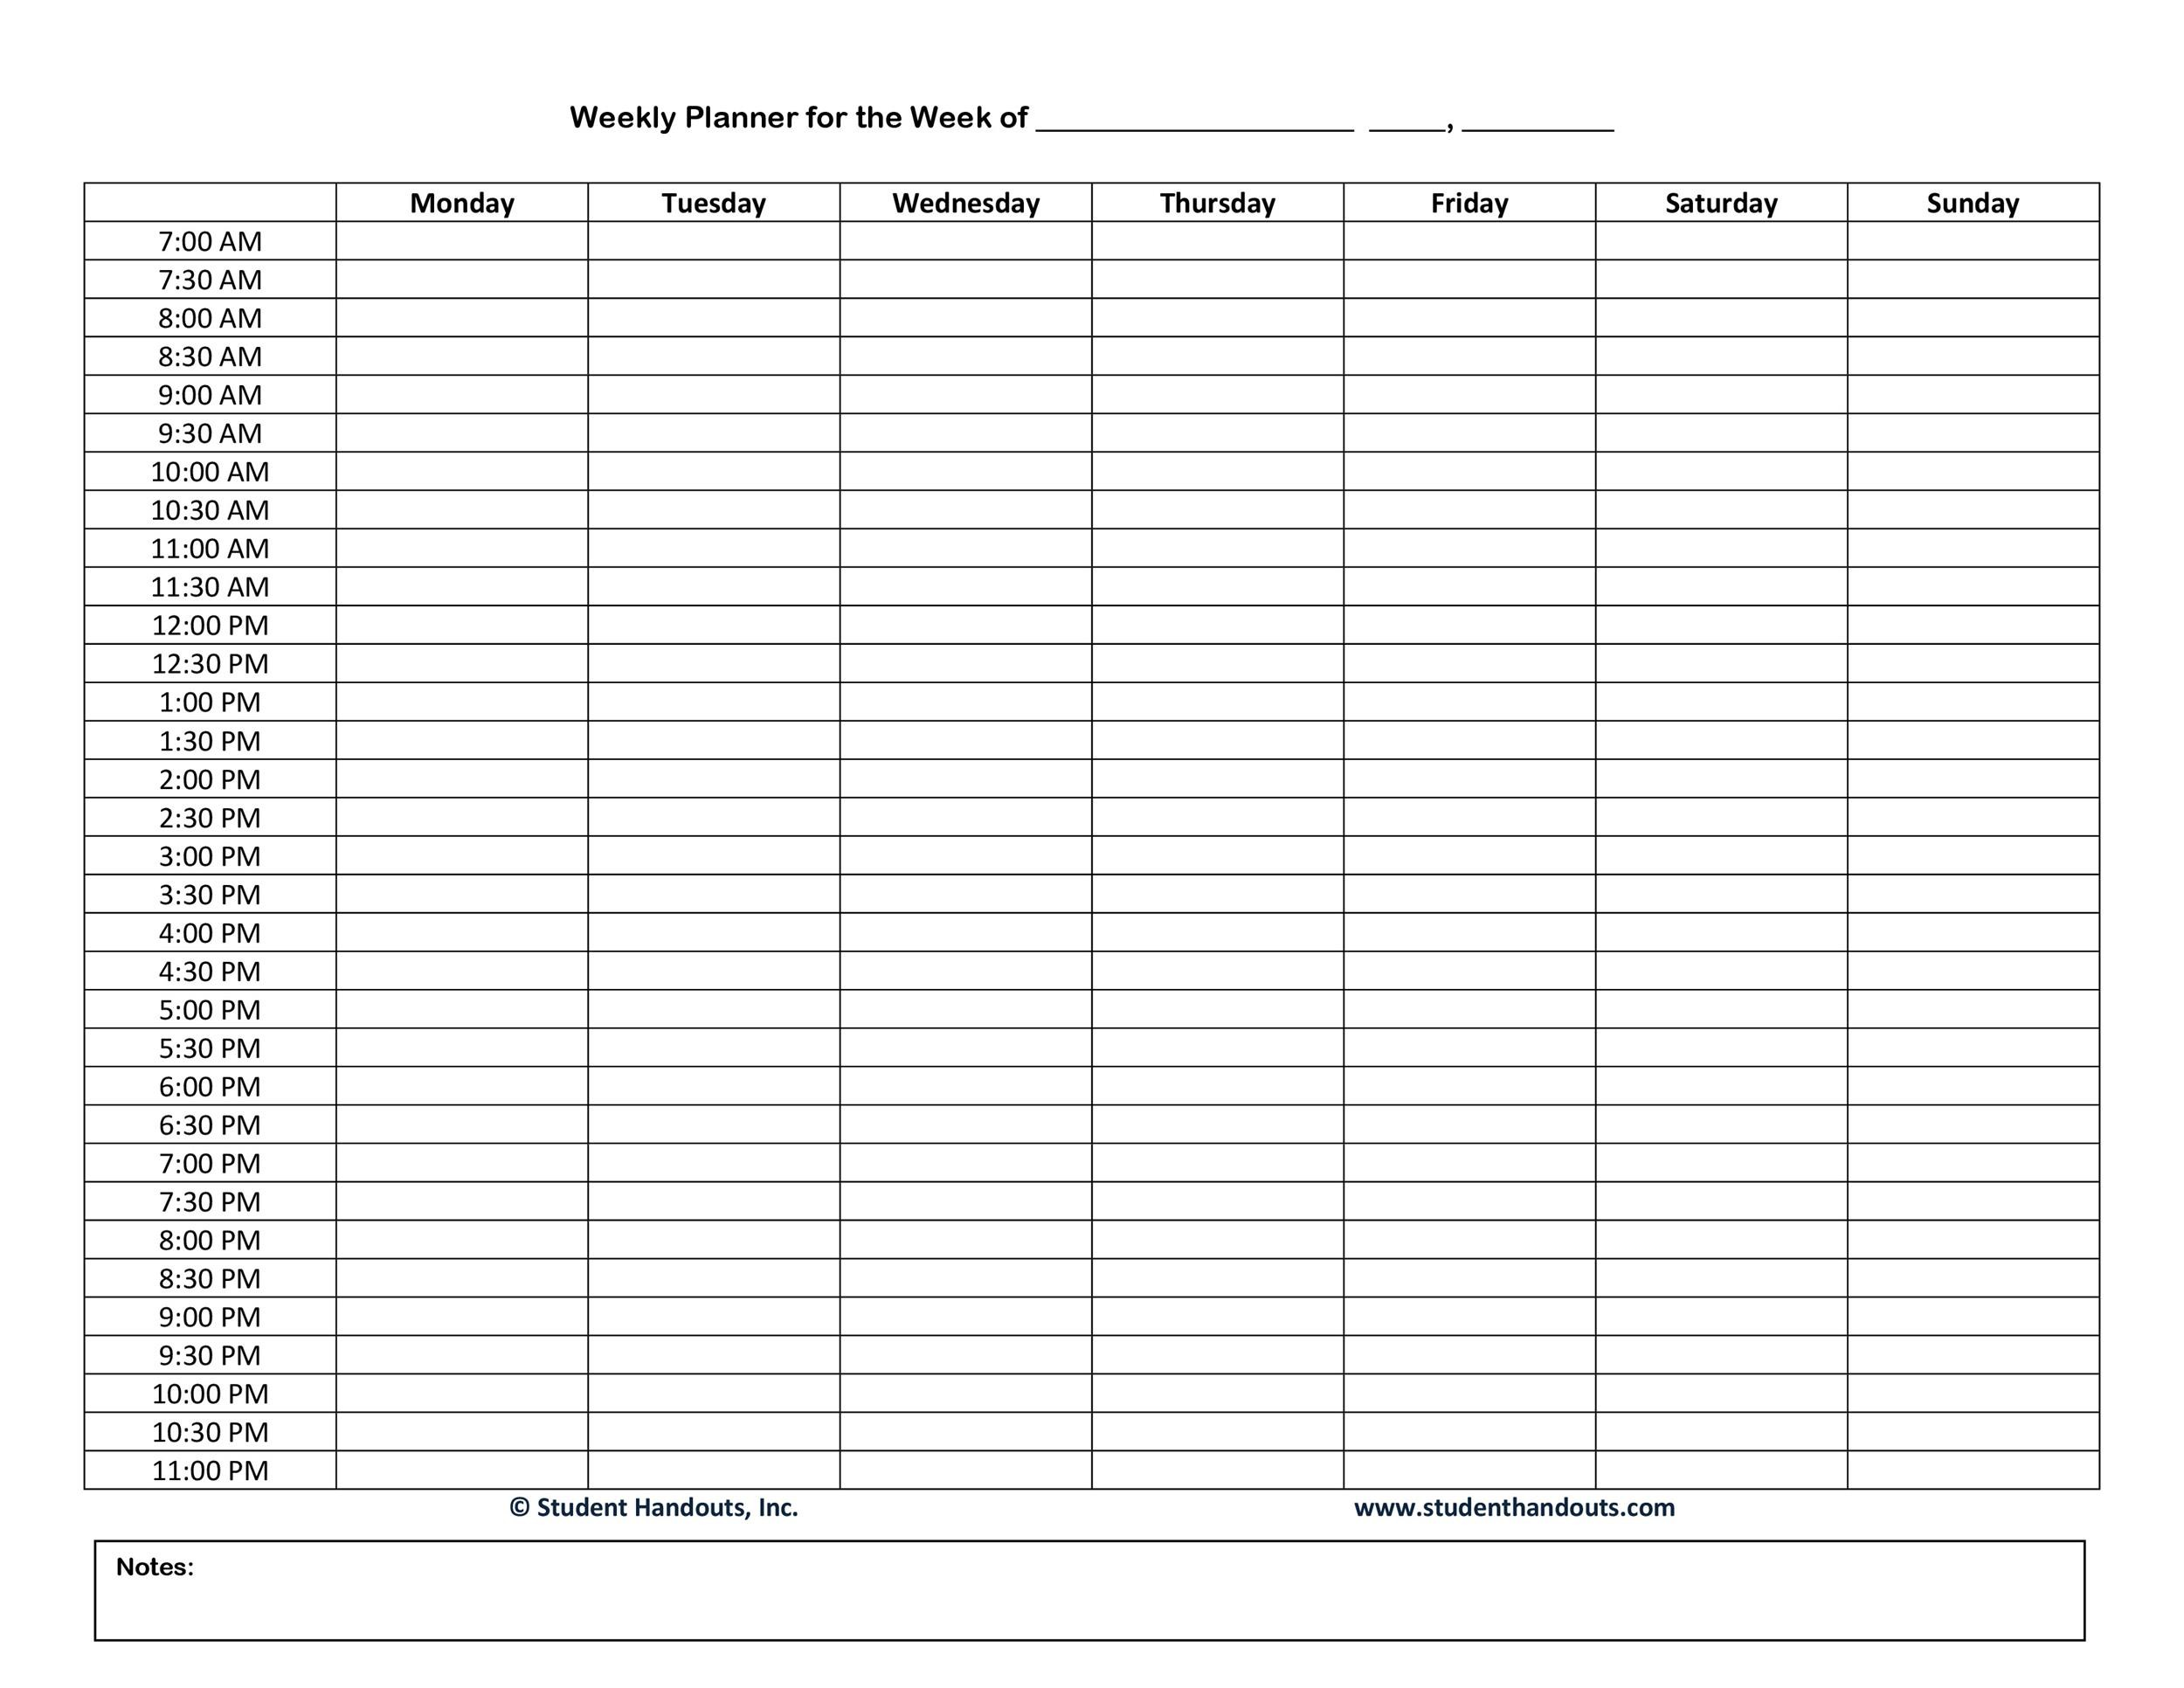 Hourly Calendar Hourly Schedule Template Printable Made Some